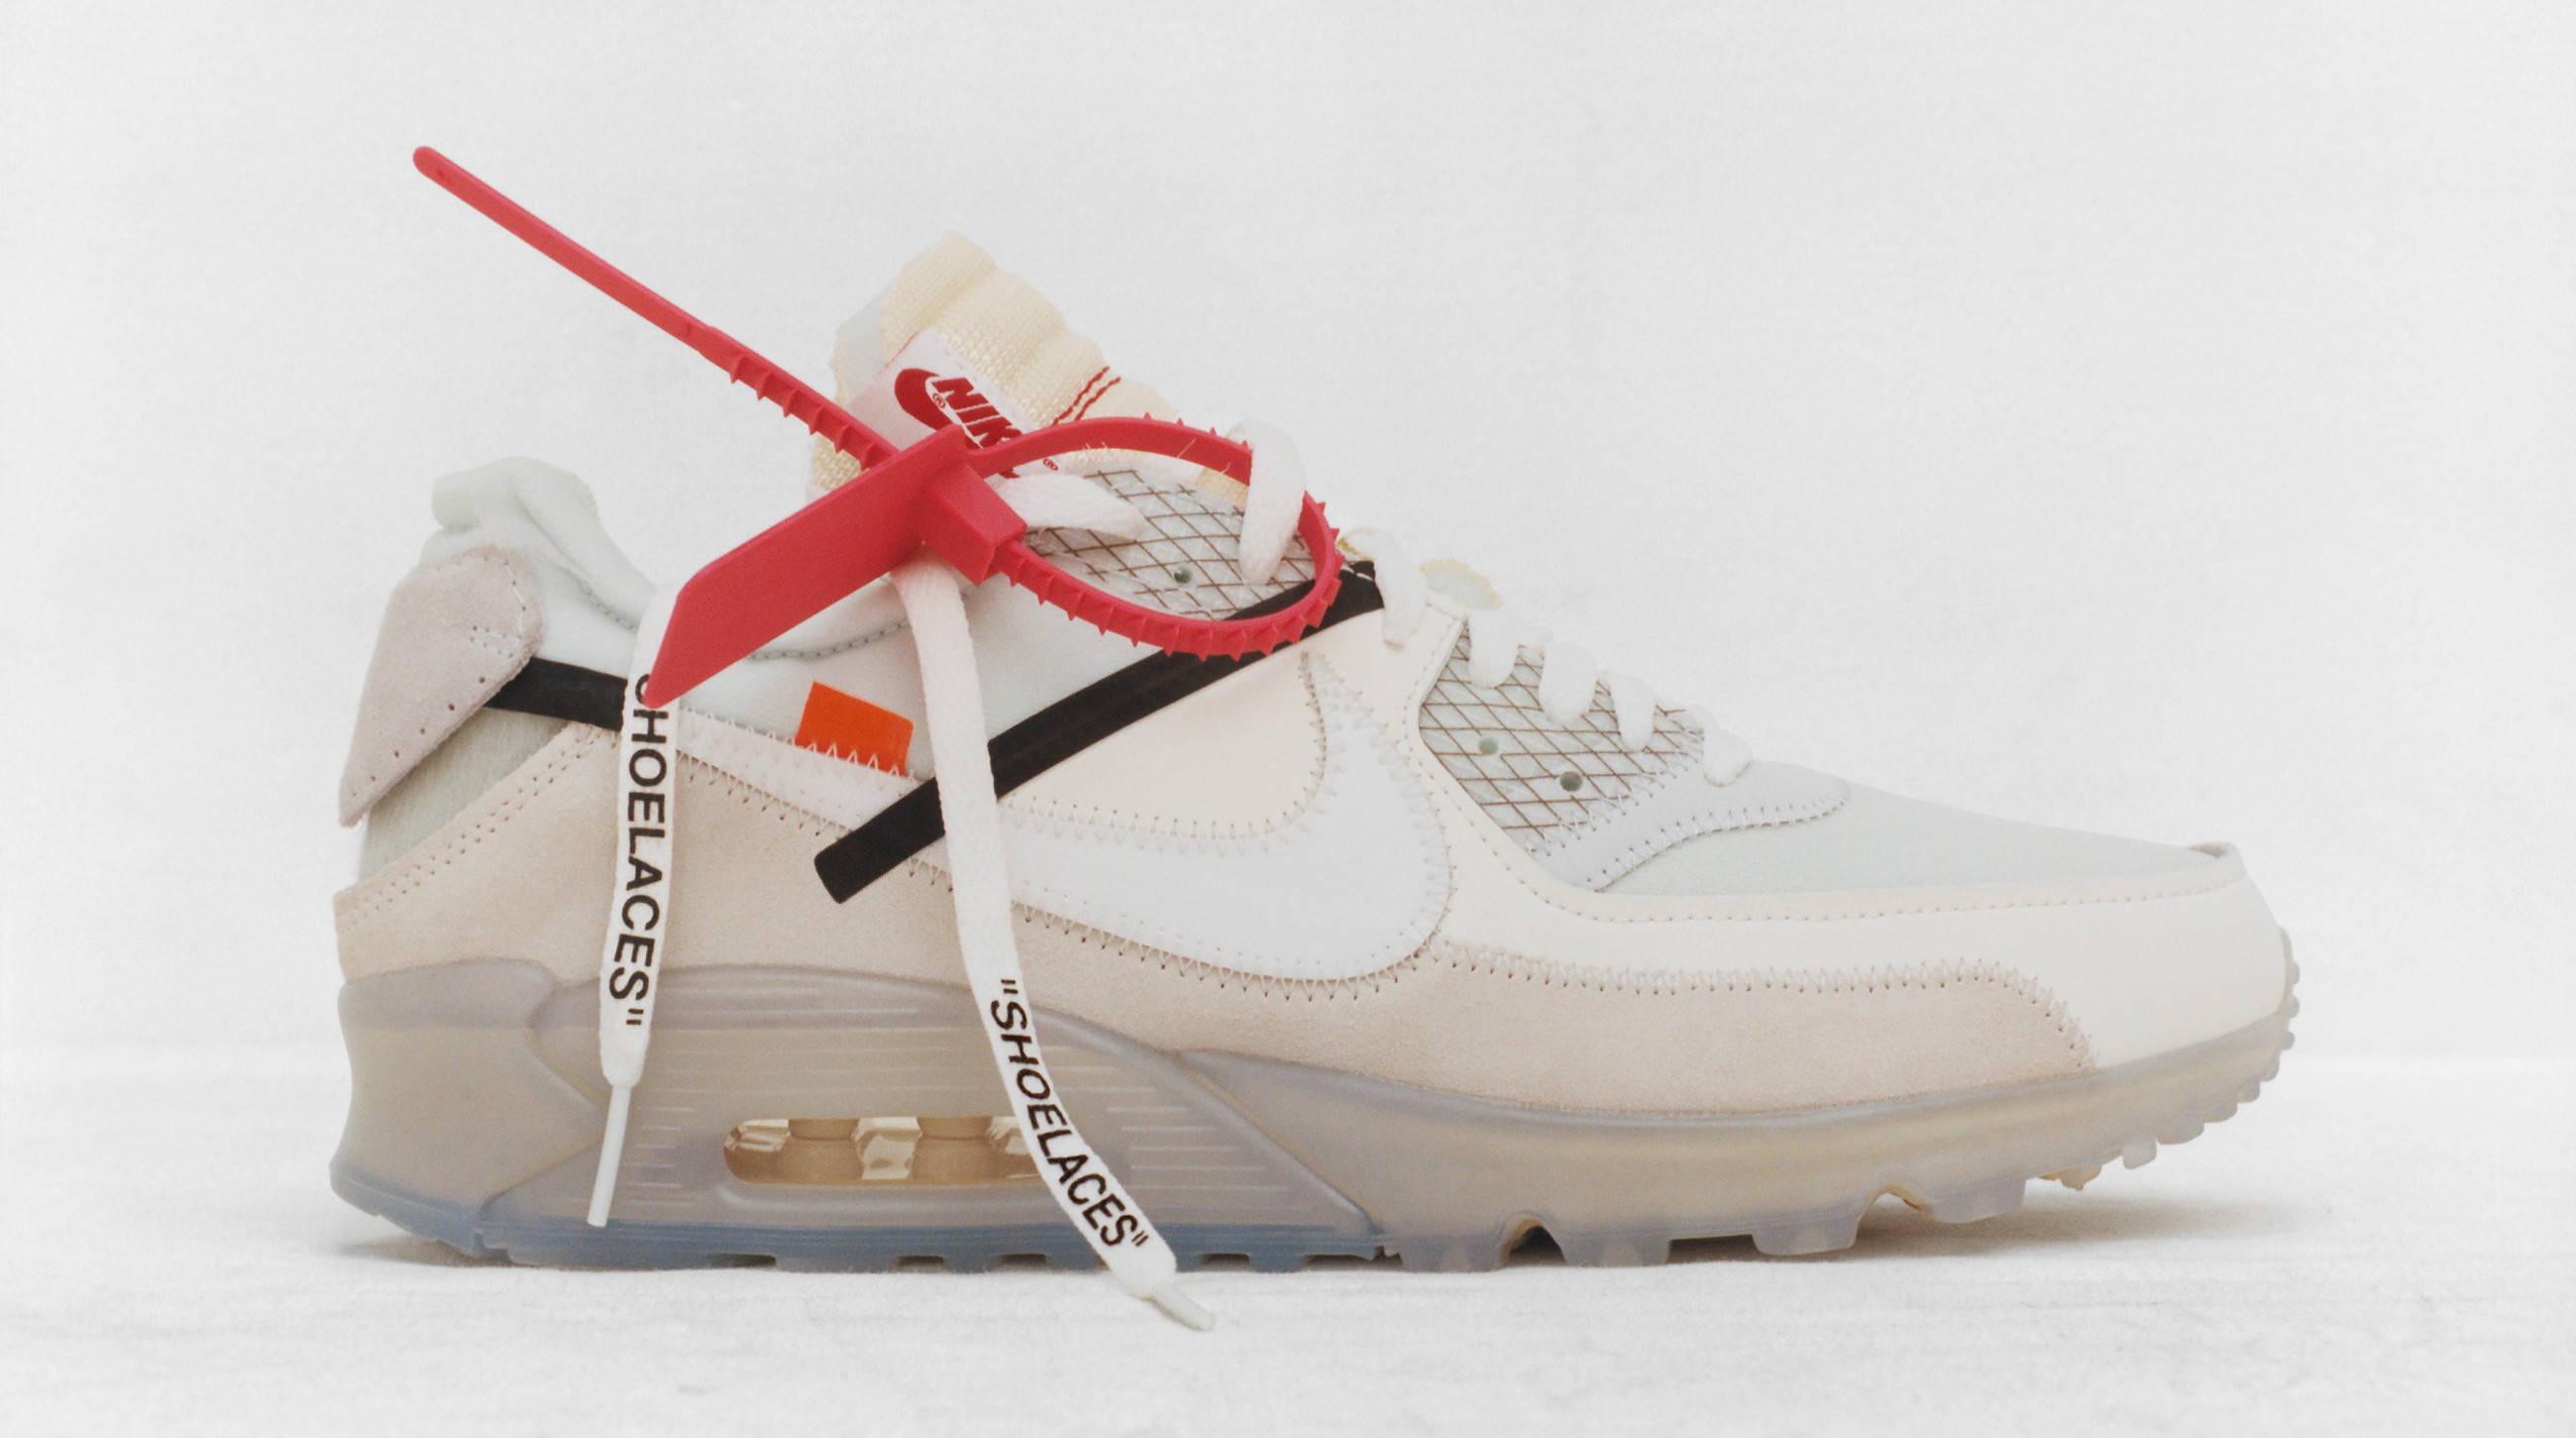 separation shoes 3730f 476b8 Off-White x Nike Air Max 90 TD  Desert Ore   Black  Release Date   Sole  Collector